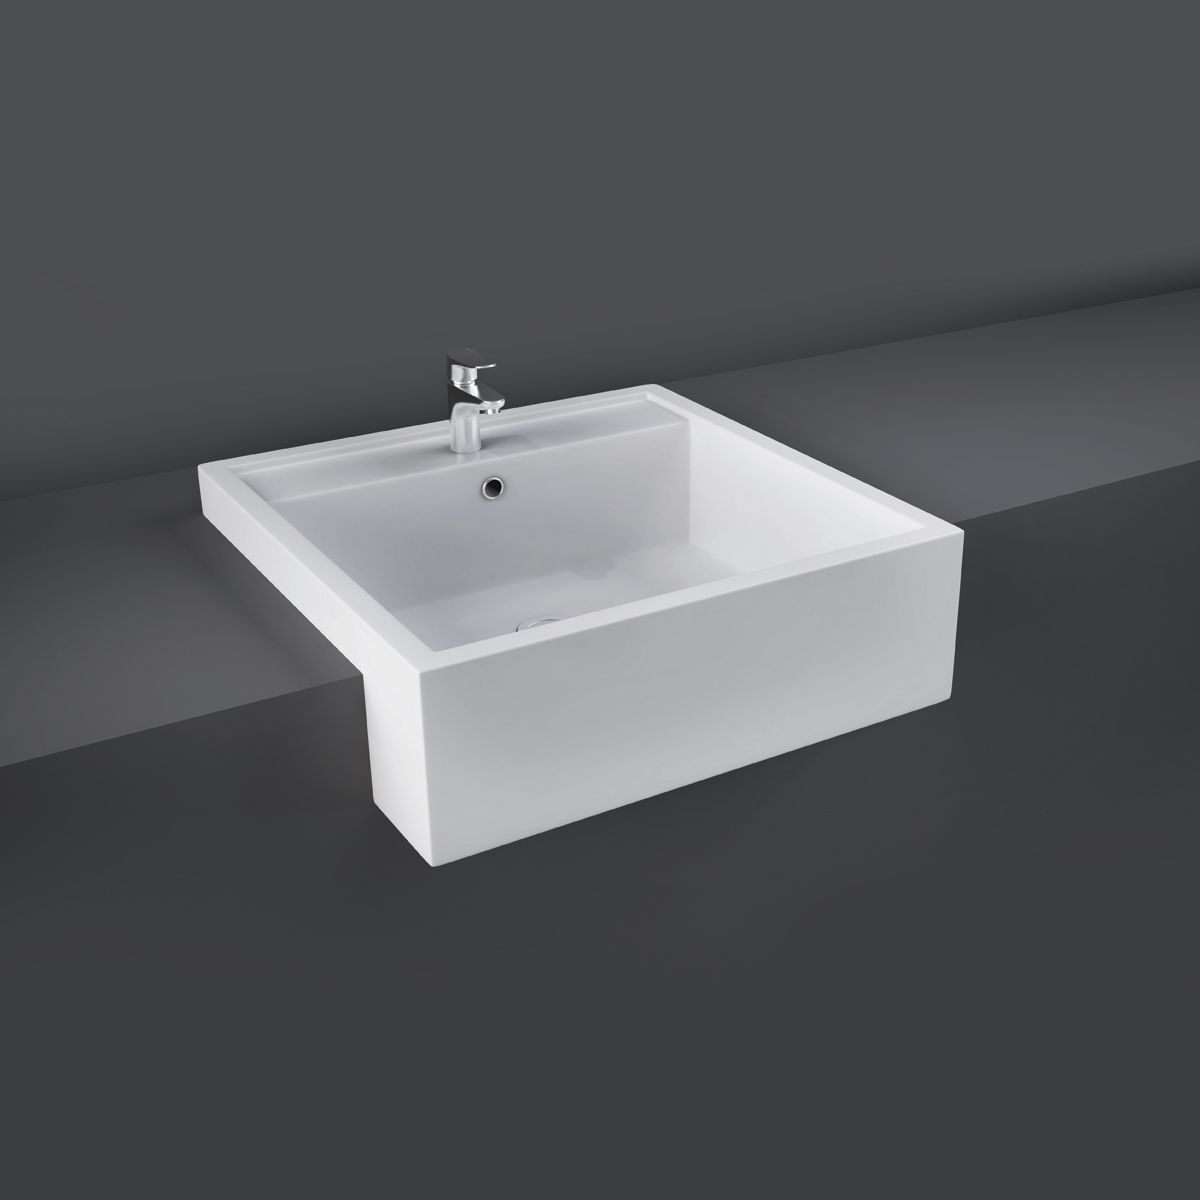 RAK Nova Semi Recessed 1 Tap Hole Basin